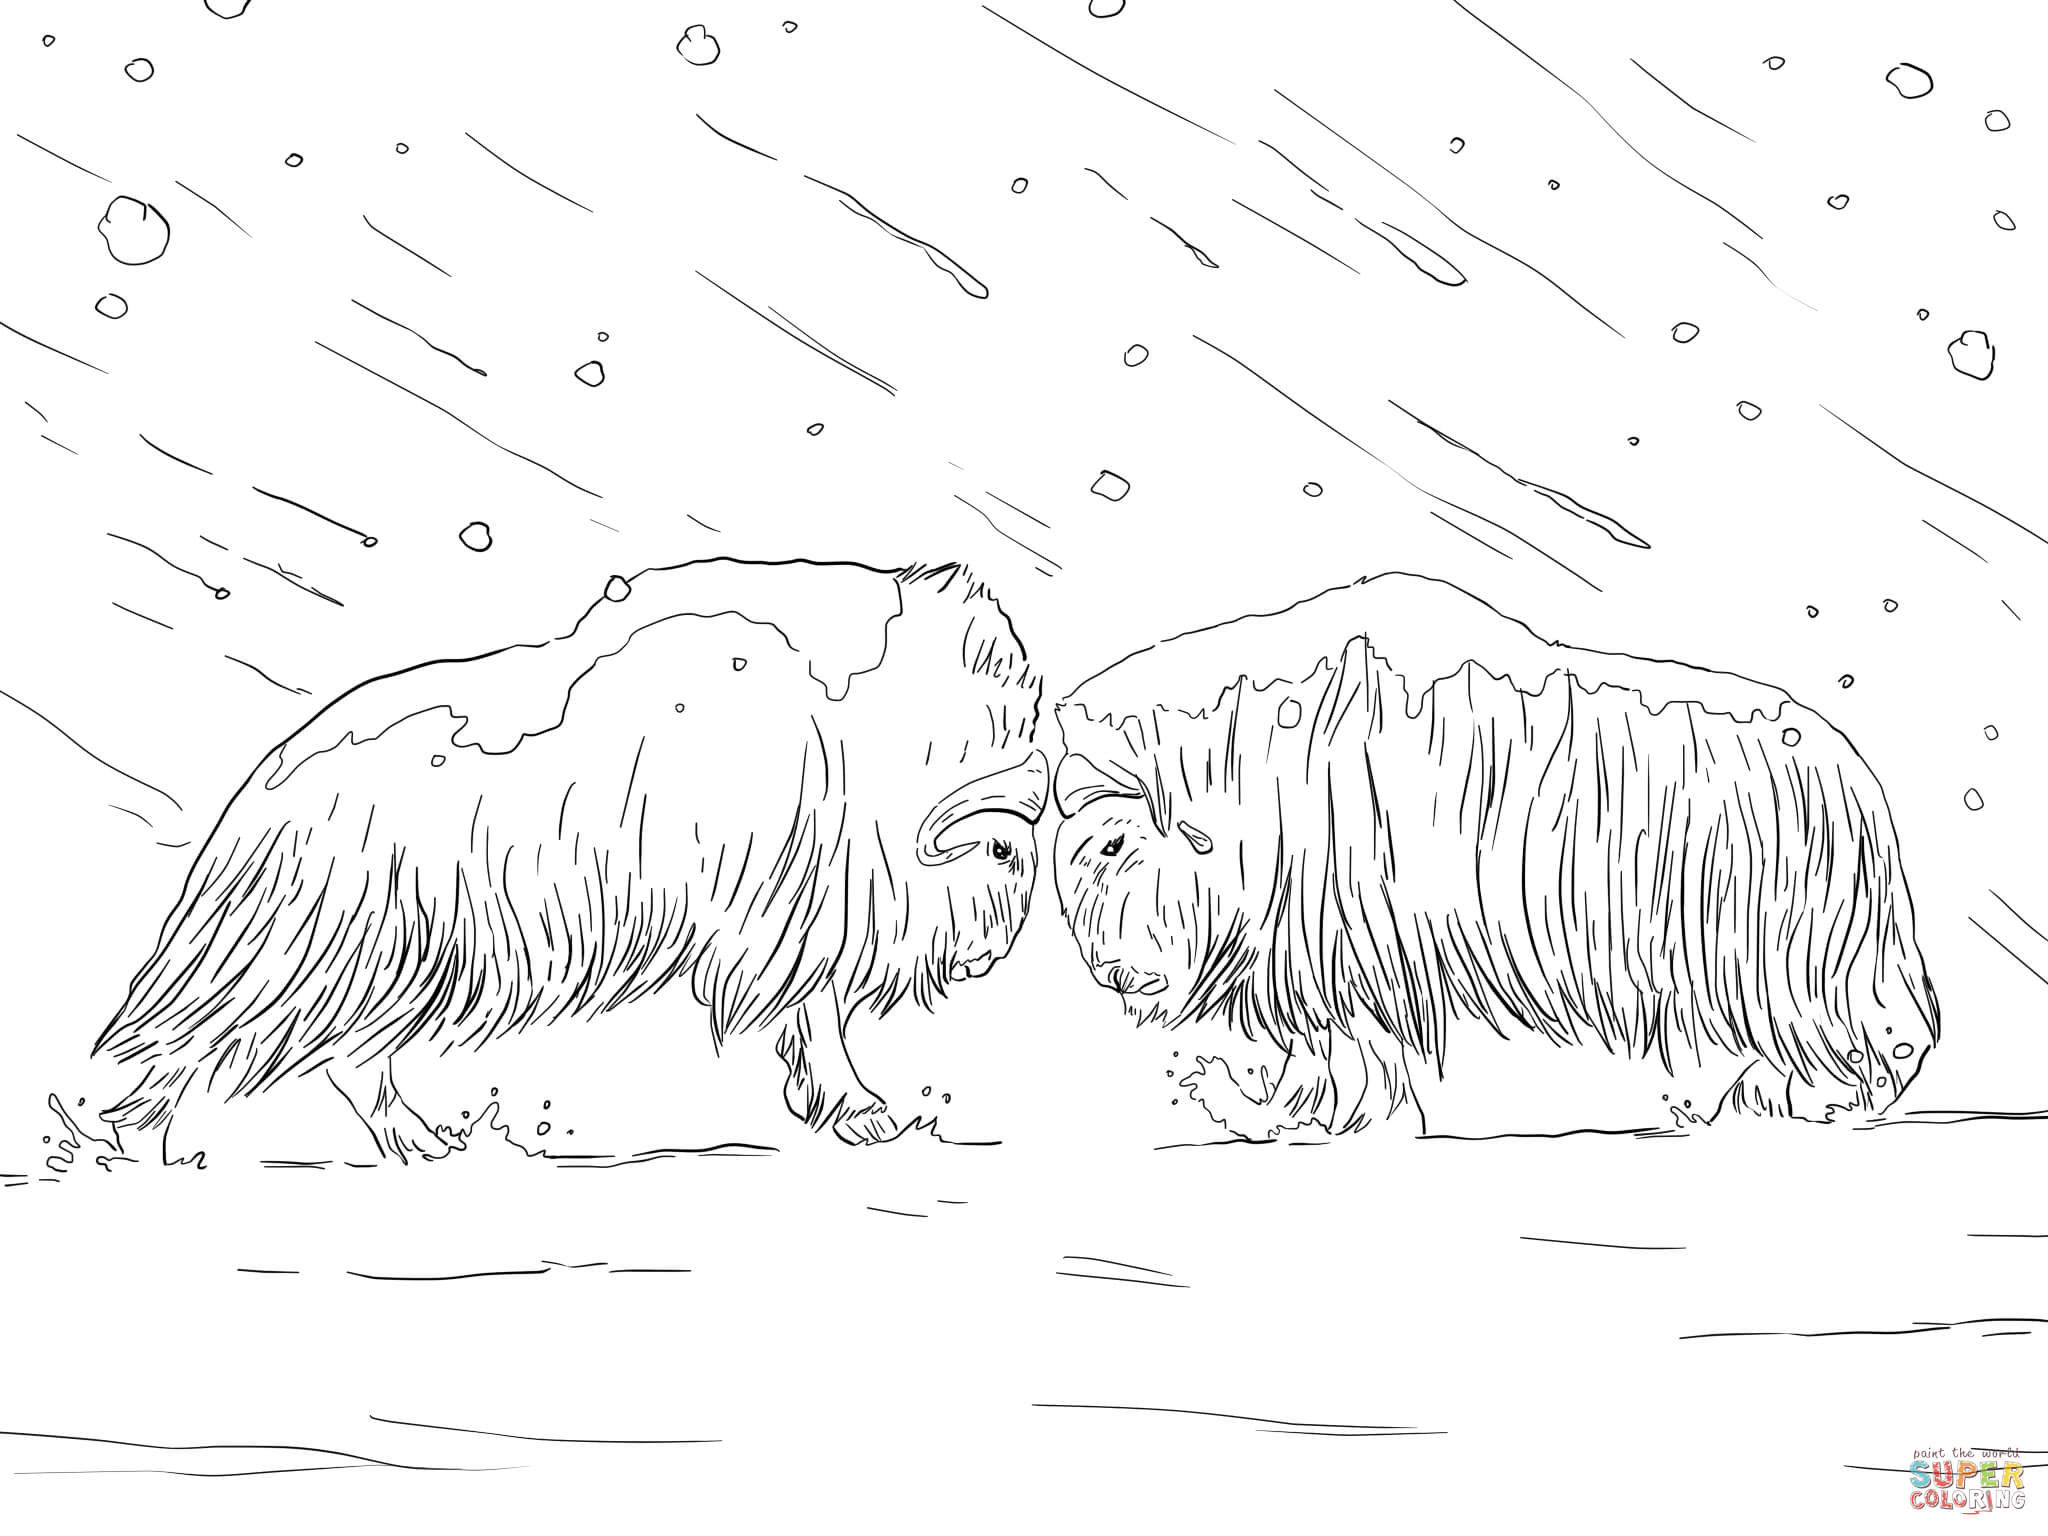 musk ox coloring page musk ox coloring page at getdrawings free download musk coloring ox page